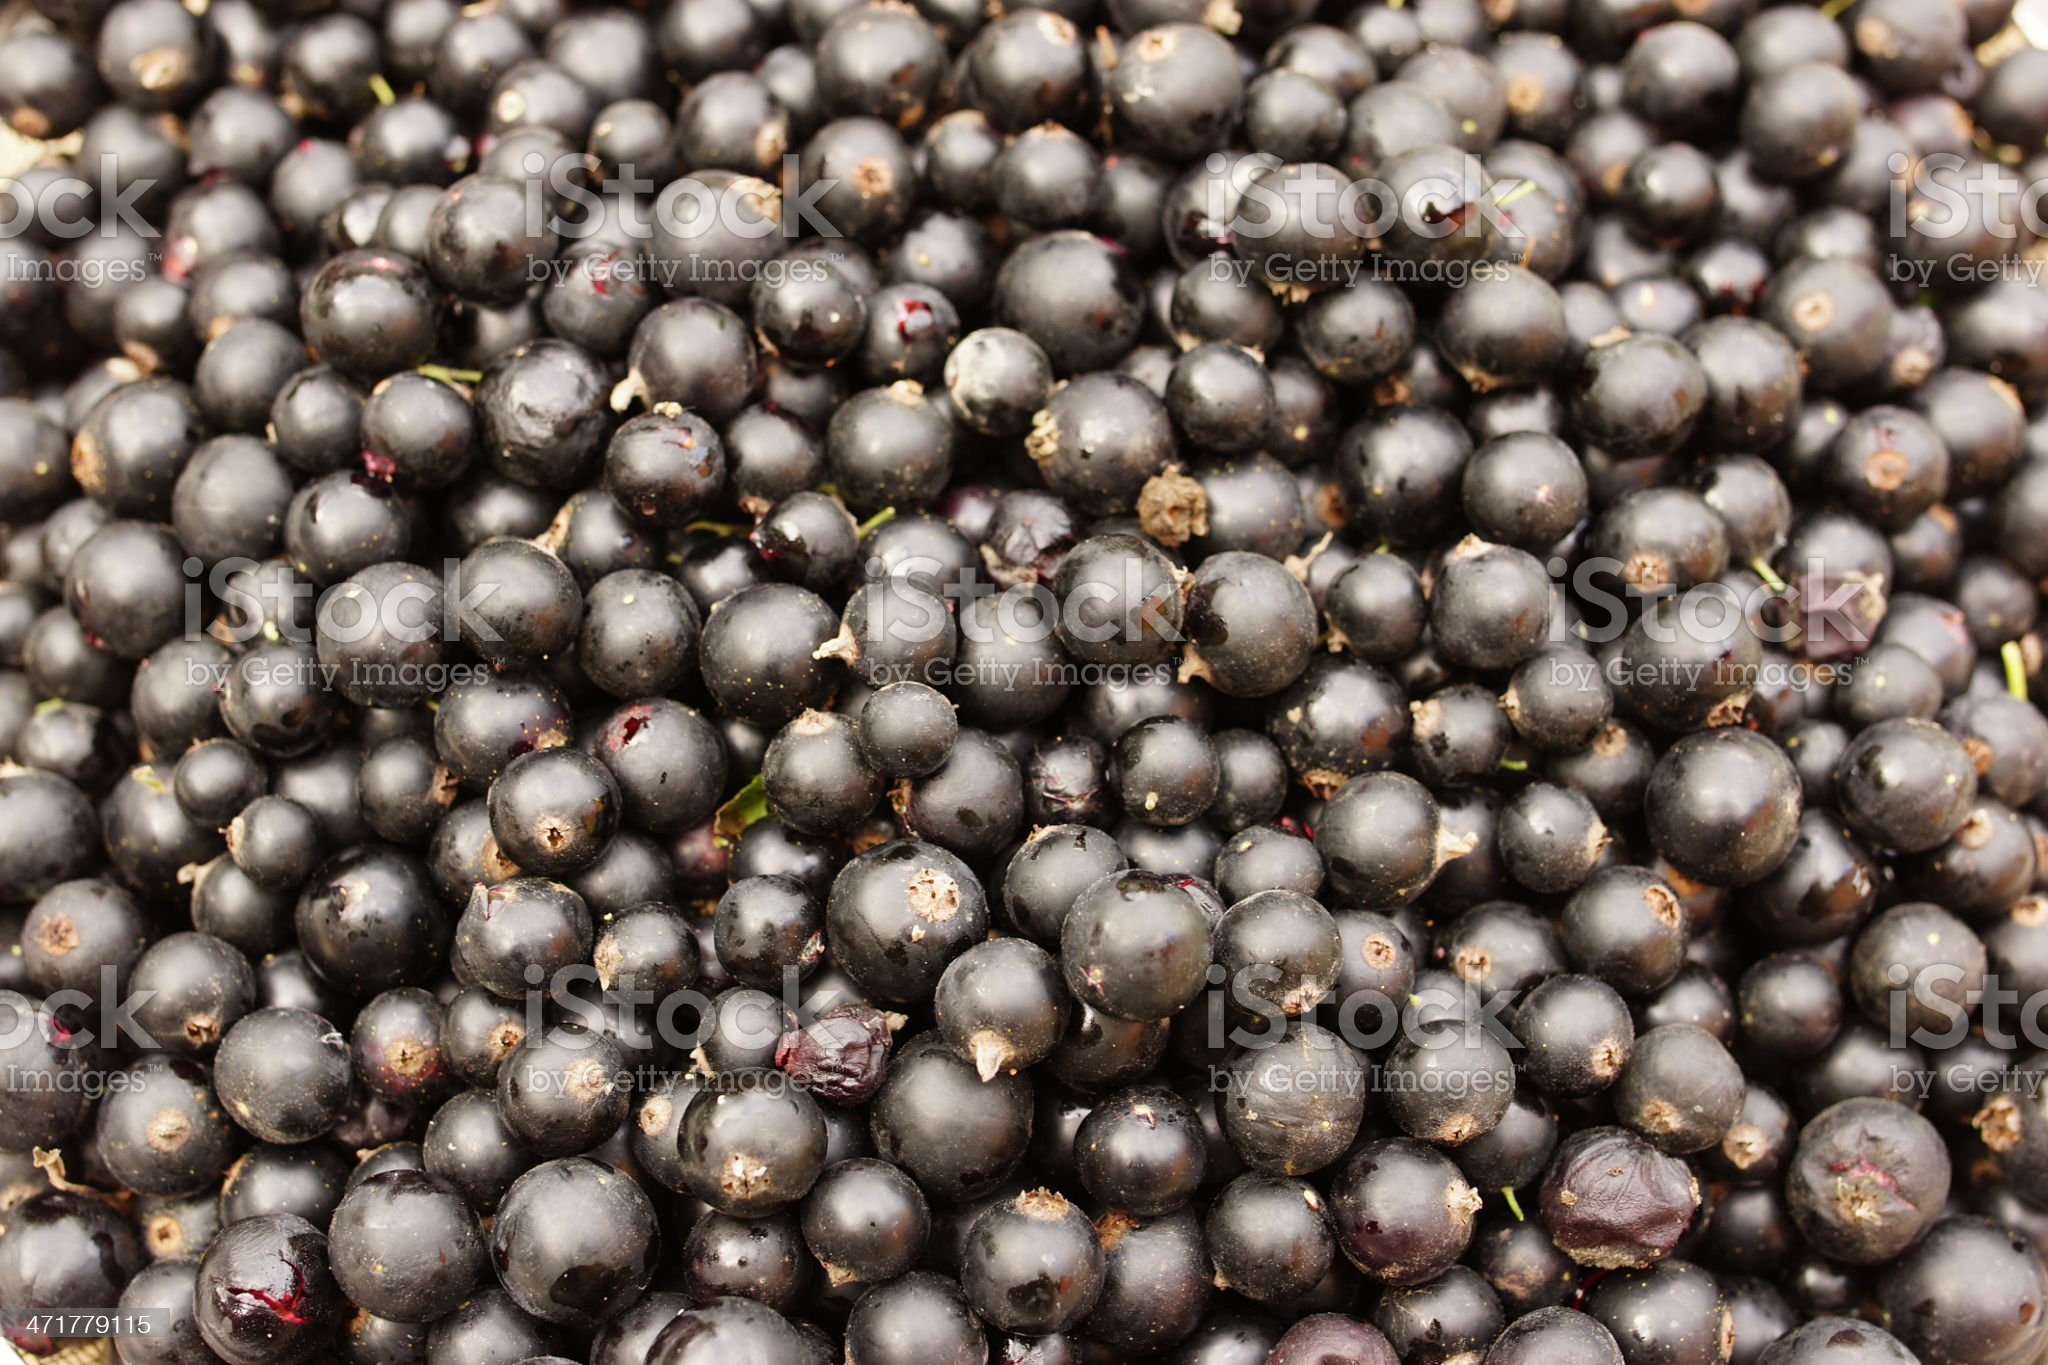 Black currant Background royalty-free stock photo